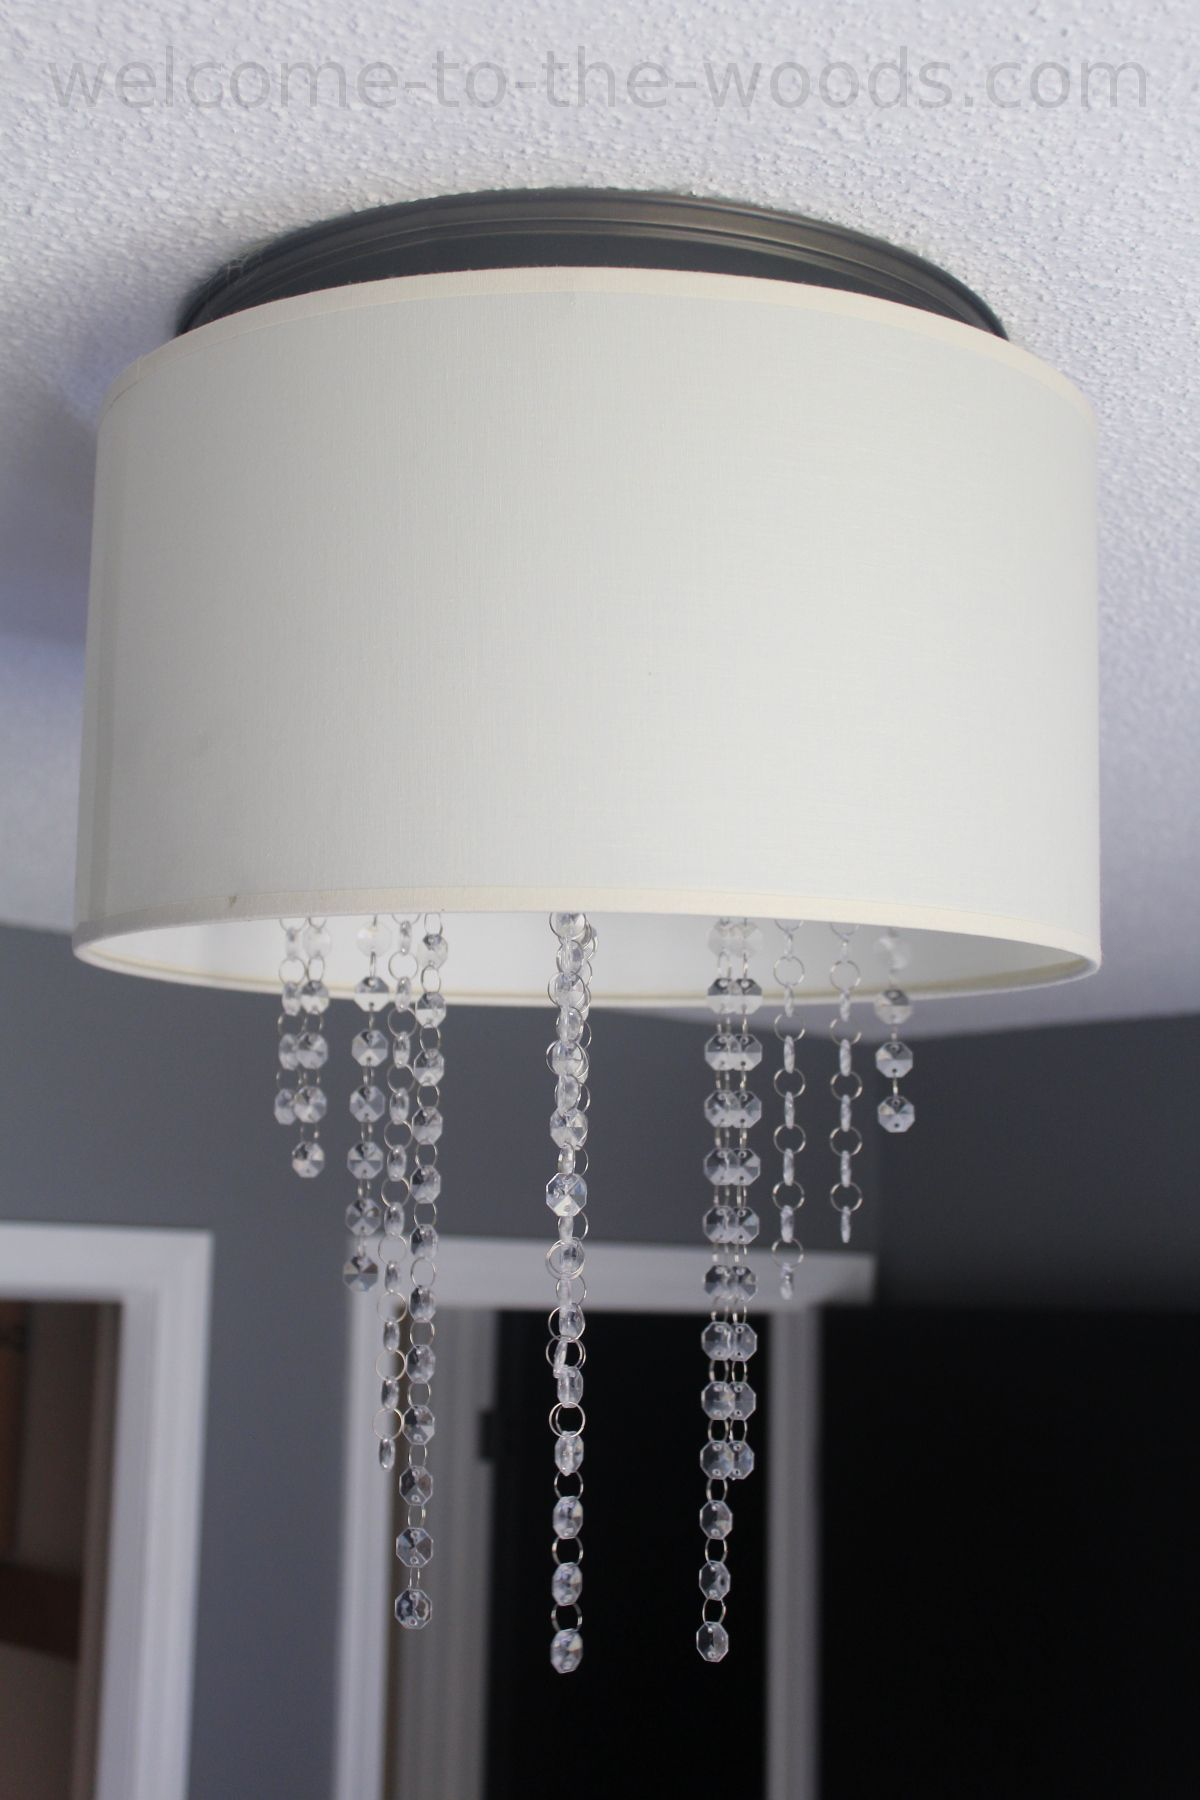 Diy drum chandelier tutorial office makeover orc pinterest drum diy drum chandelier photo tutorial she made this for a total of 6 use an old lamp shade and repurpose it into a chandelier with this tutorial mozeypictures Images